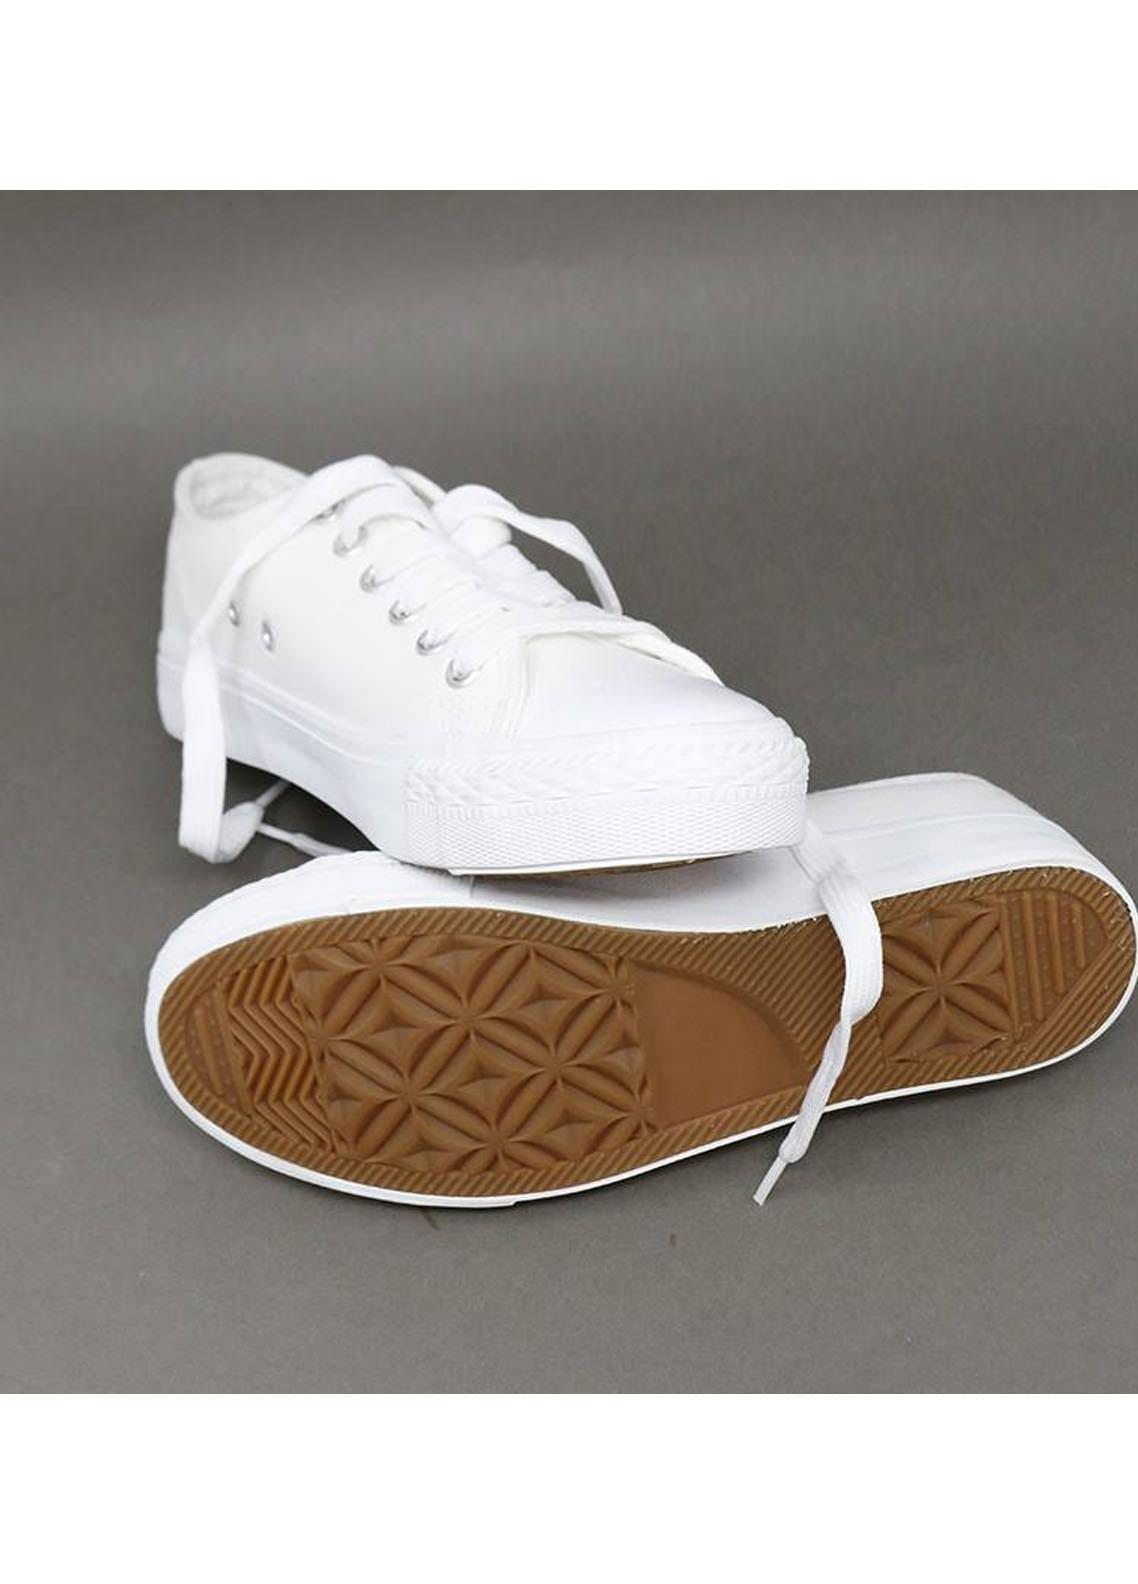 Mumuso Casual Style  Flat Shoes 51 CANVAS WHITE